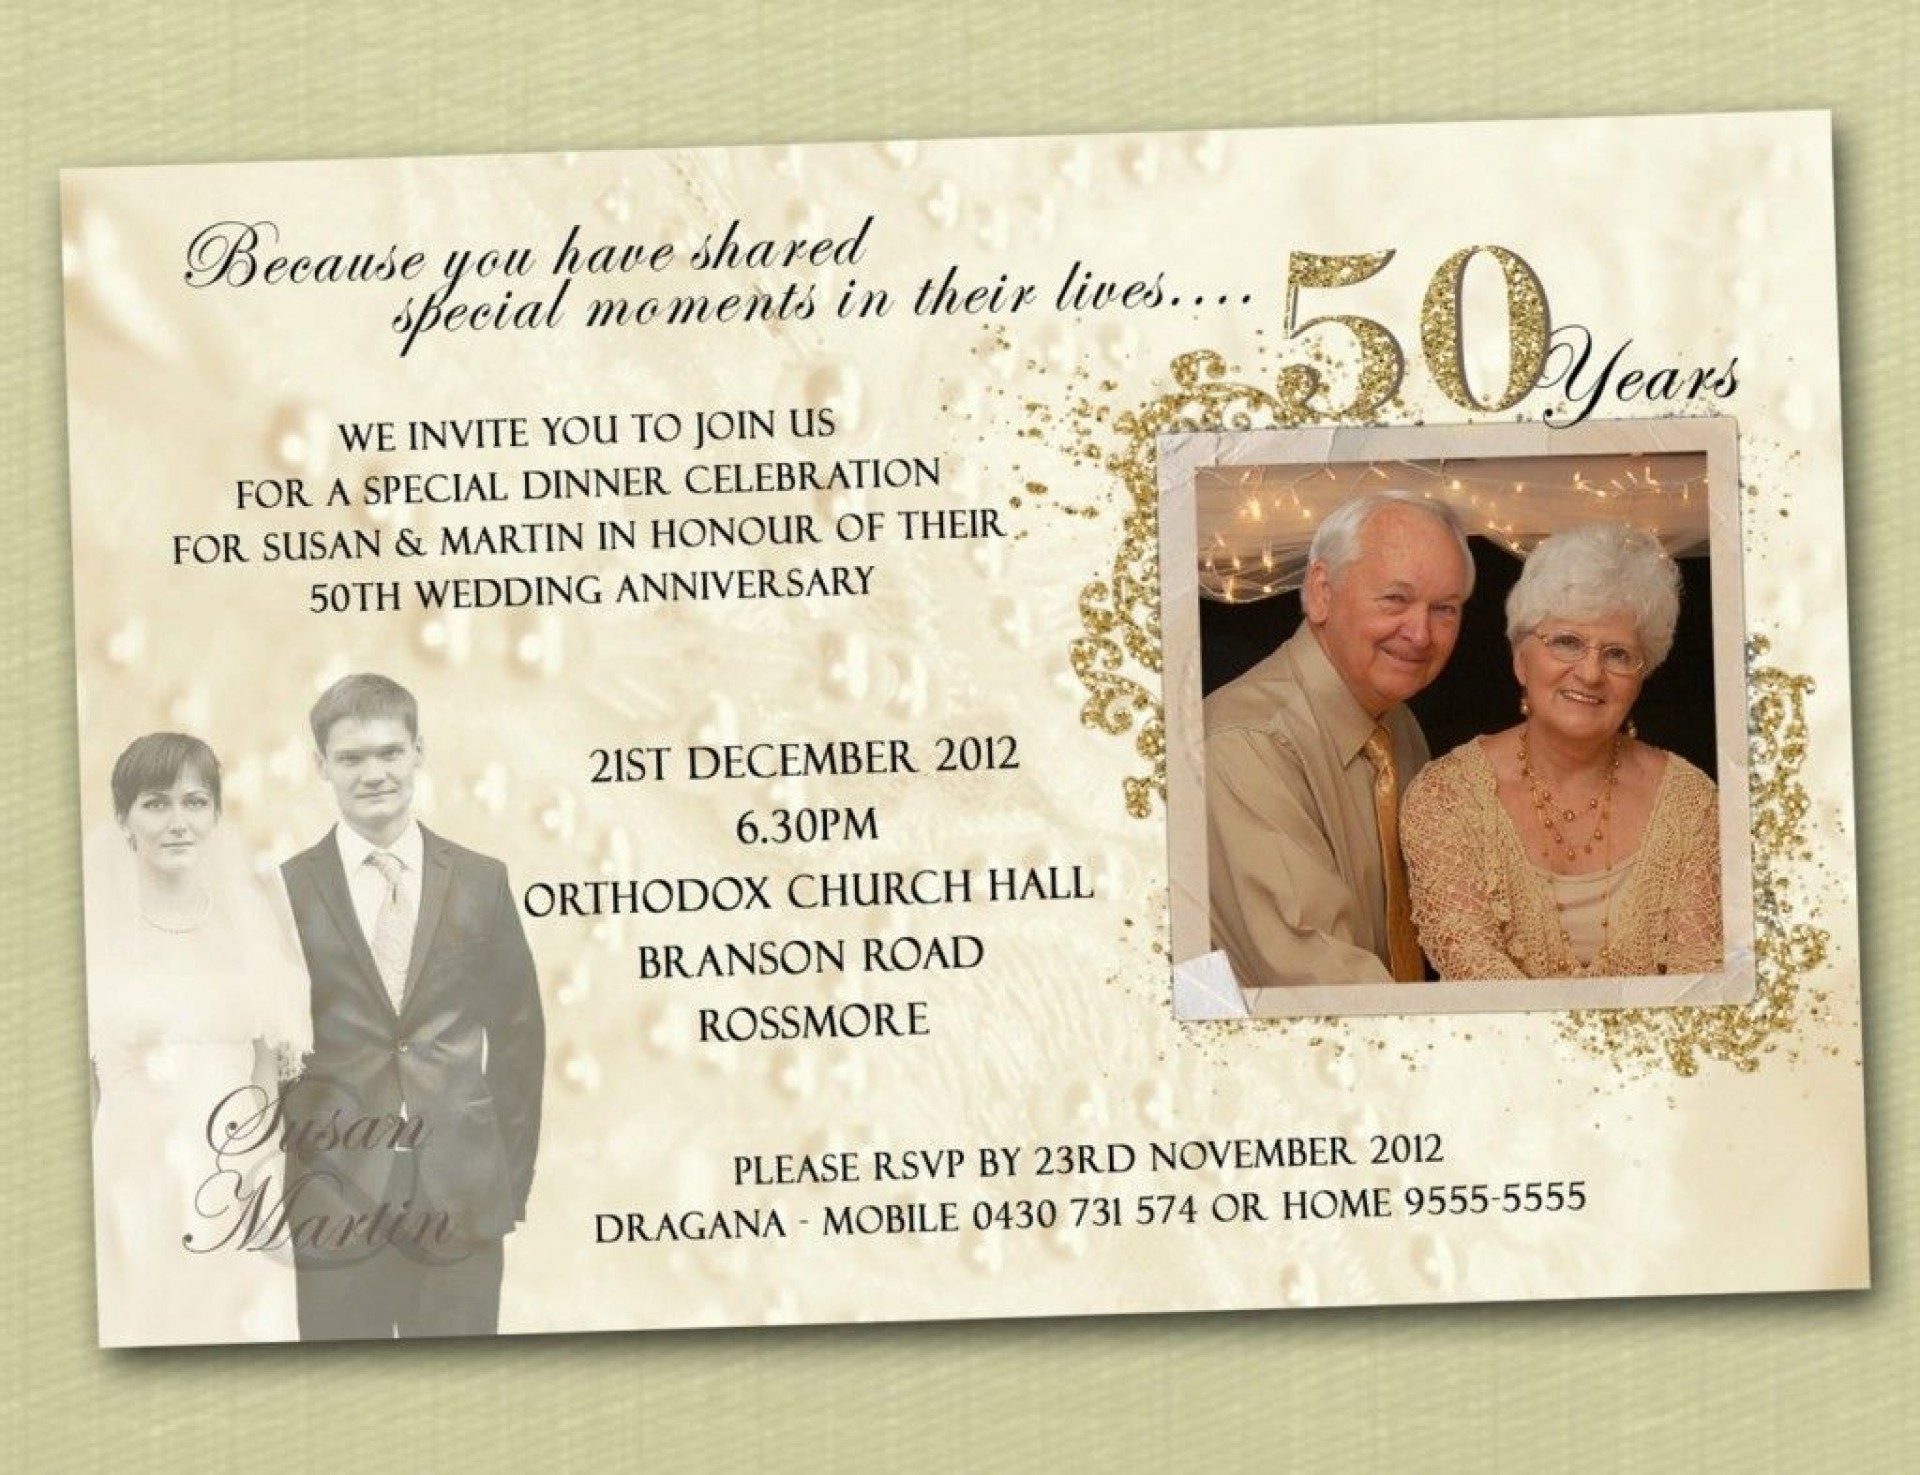 007 Magnificent 50th Wedding Anniversary Invitation Card Sample Picture  Wording1920